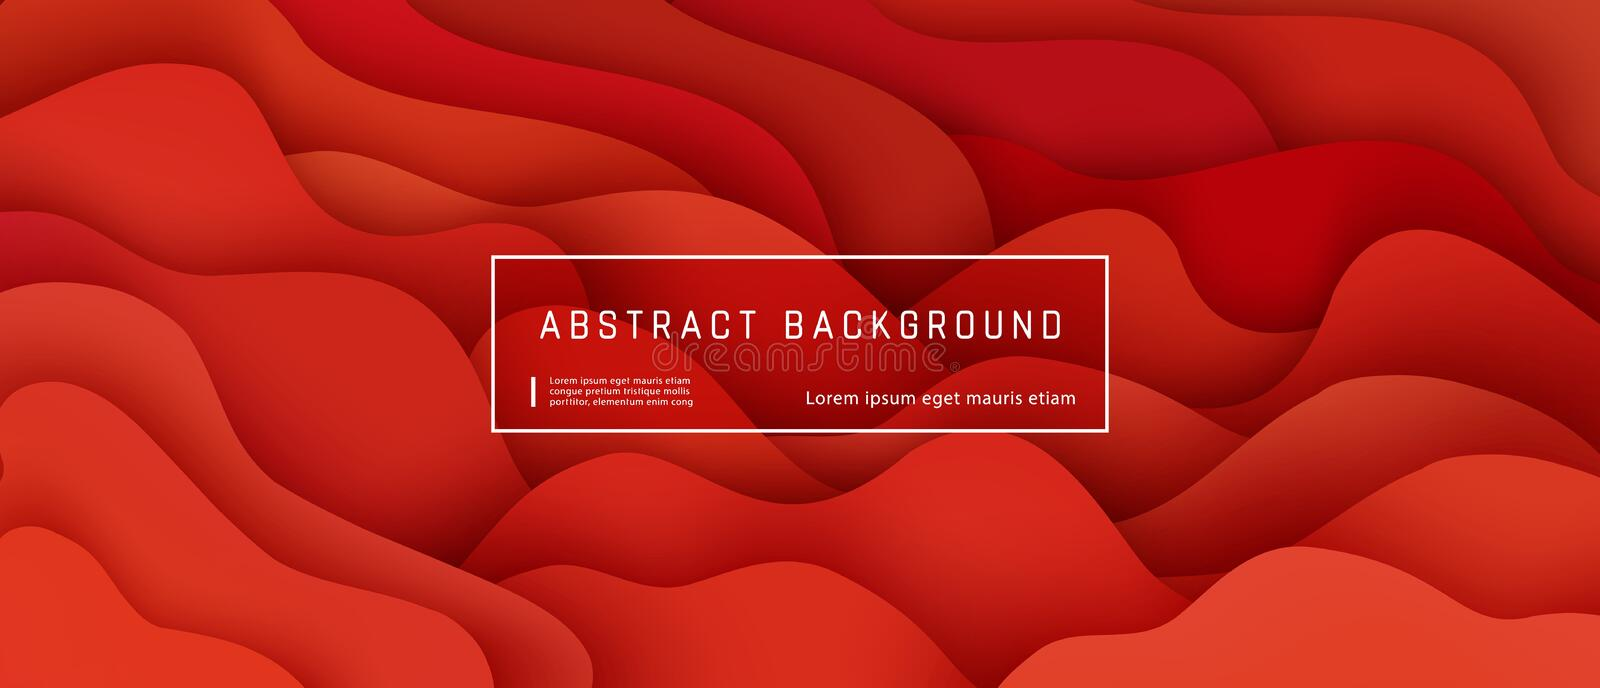 Abstract background with red wave and liquid shapes composition. Gradient fluid abstract background template, vector illustration. Design presentation, poster royalty free illustration